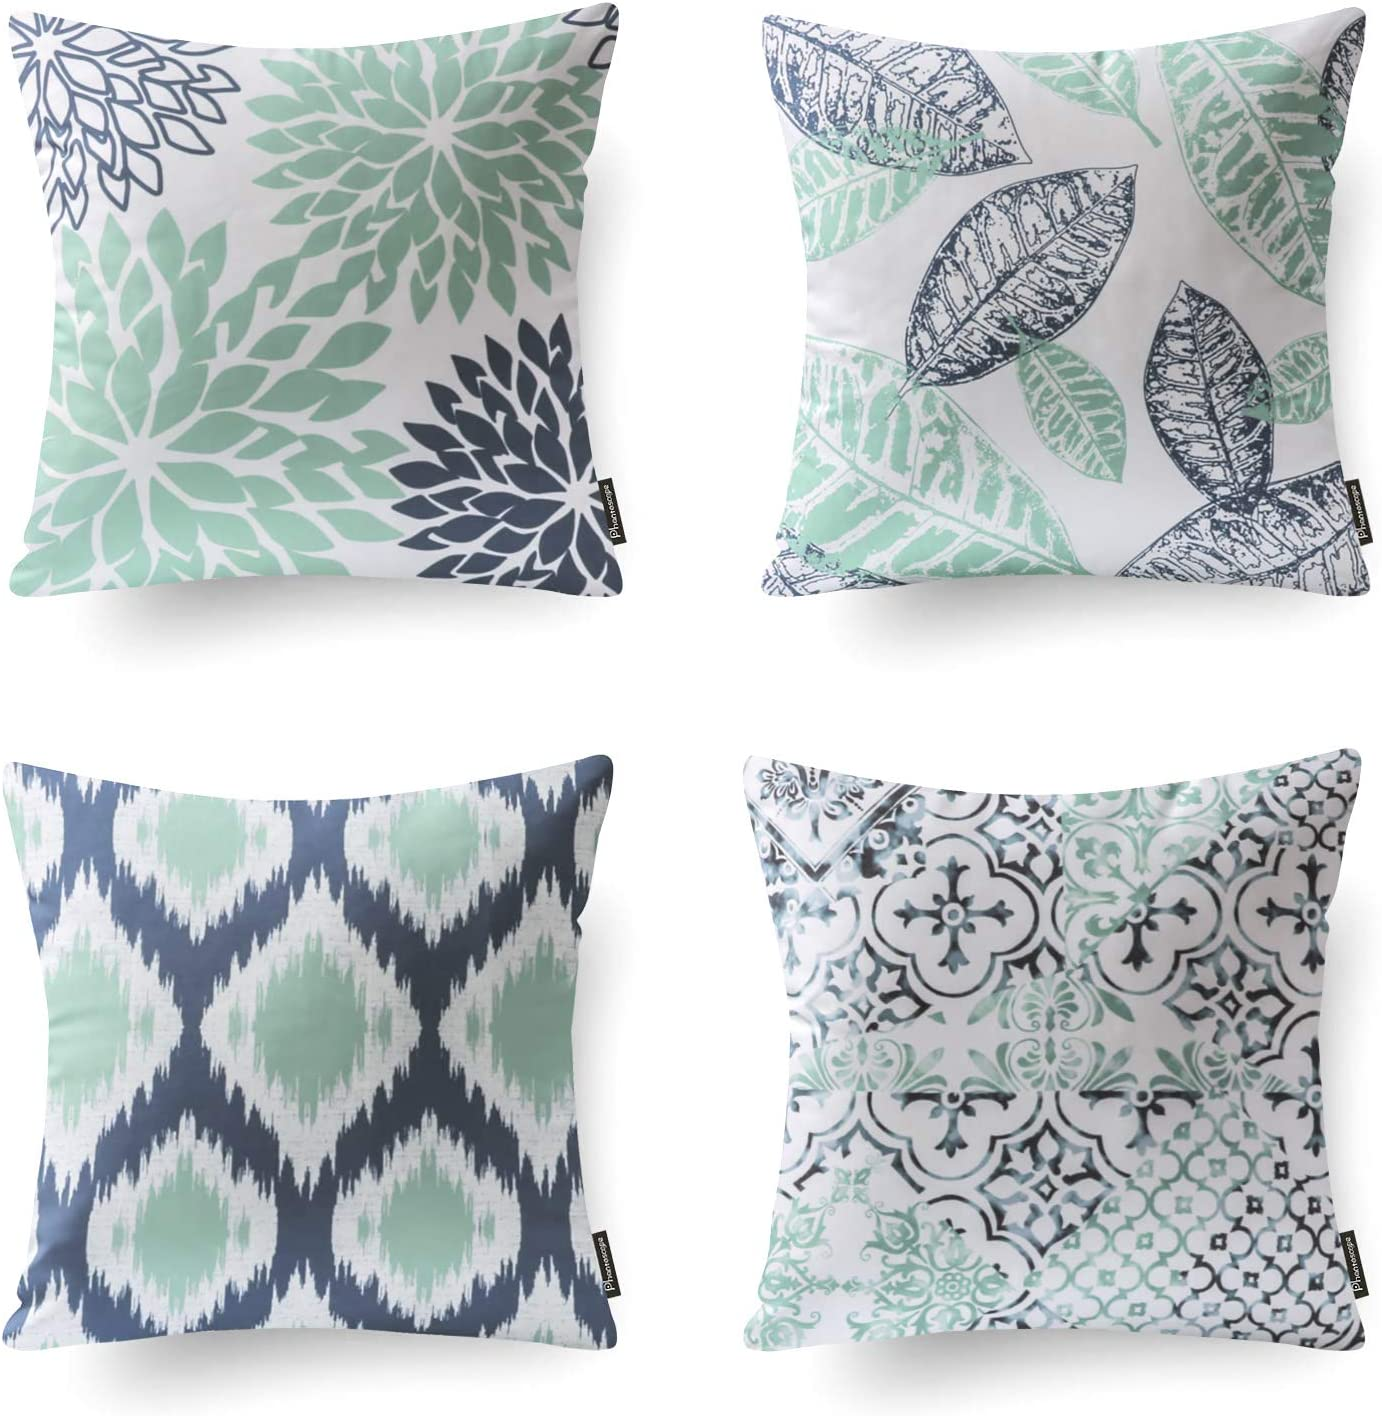 Phantoscope Set of 4 Decorative New Living Series Cyan Blue Throw Pillow Case Cushion Cover 18 x 18 inches 45 x 45 cm